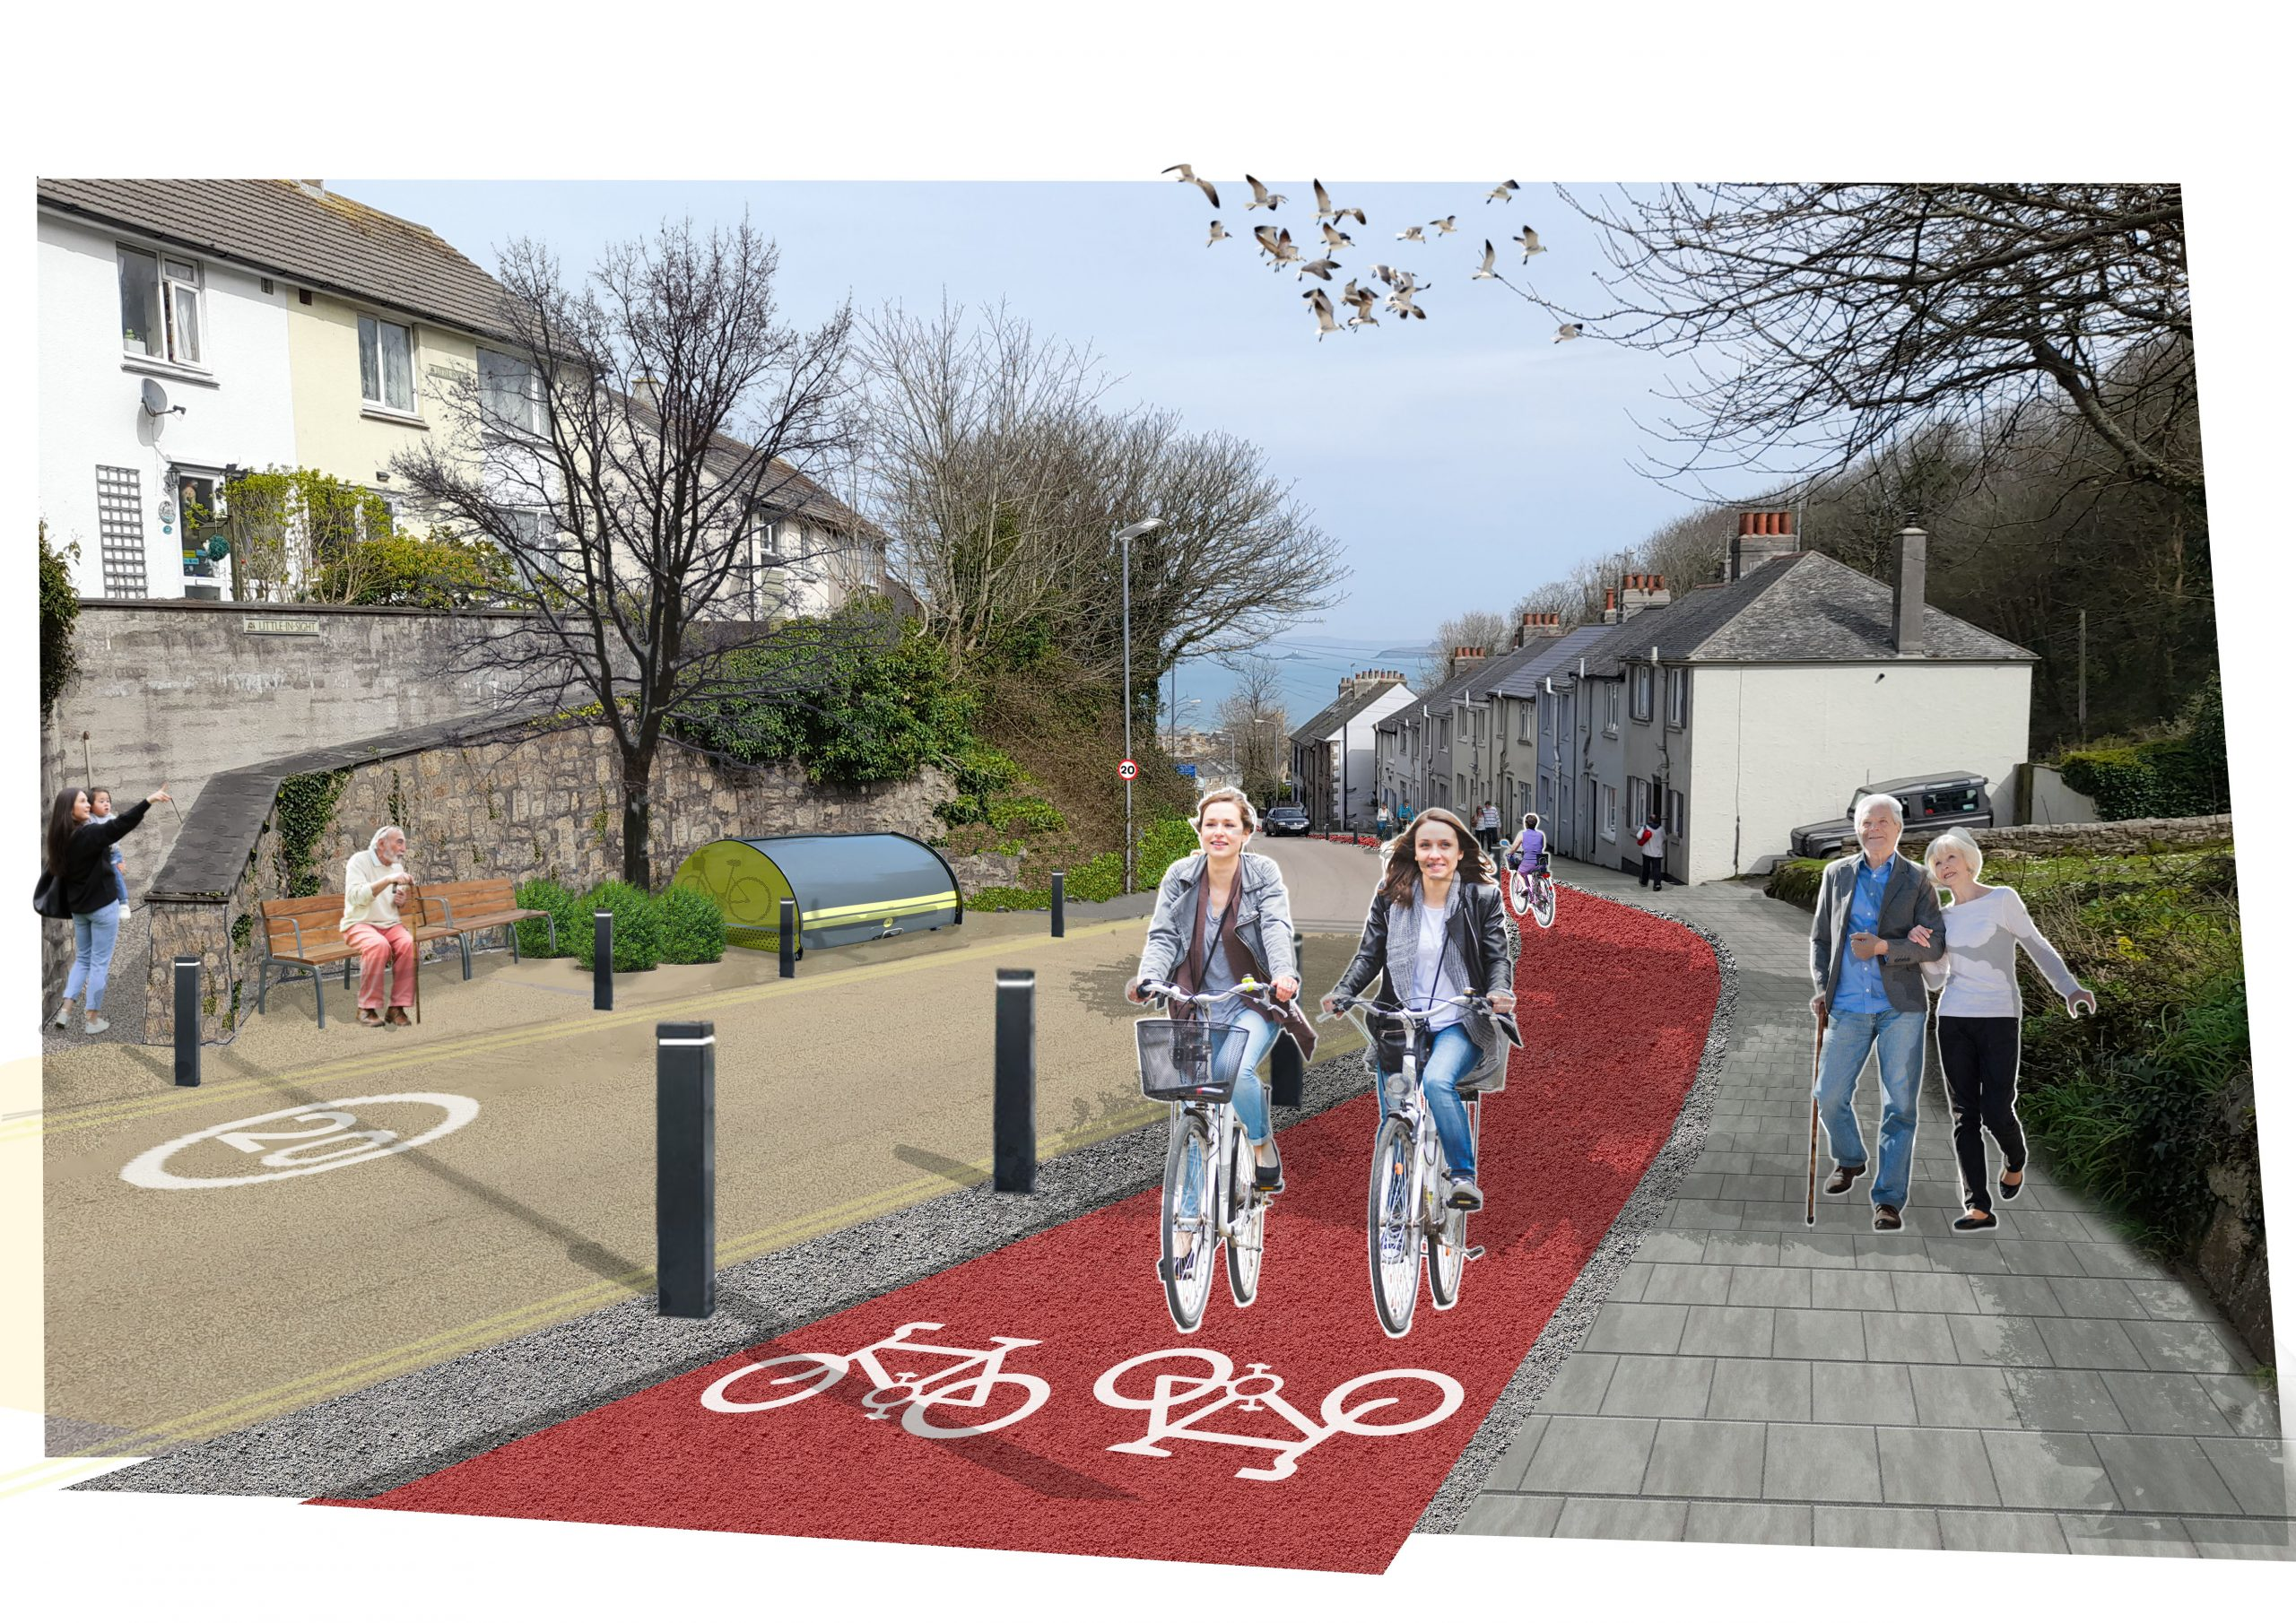 sketch view of street with a new cycle track